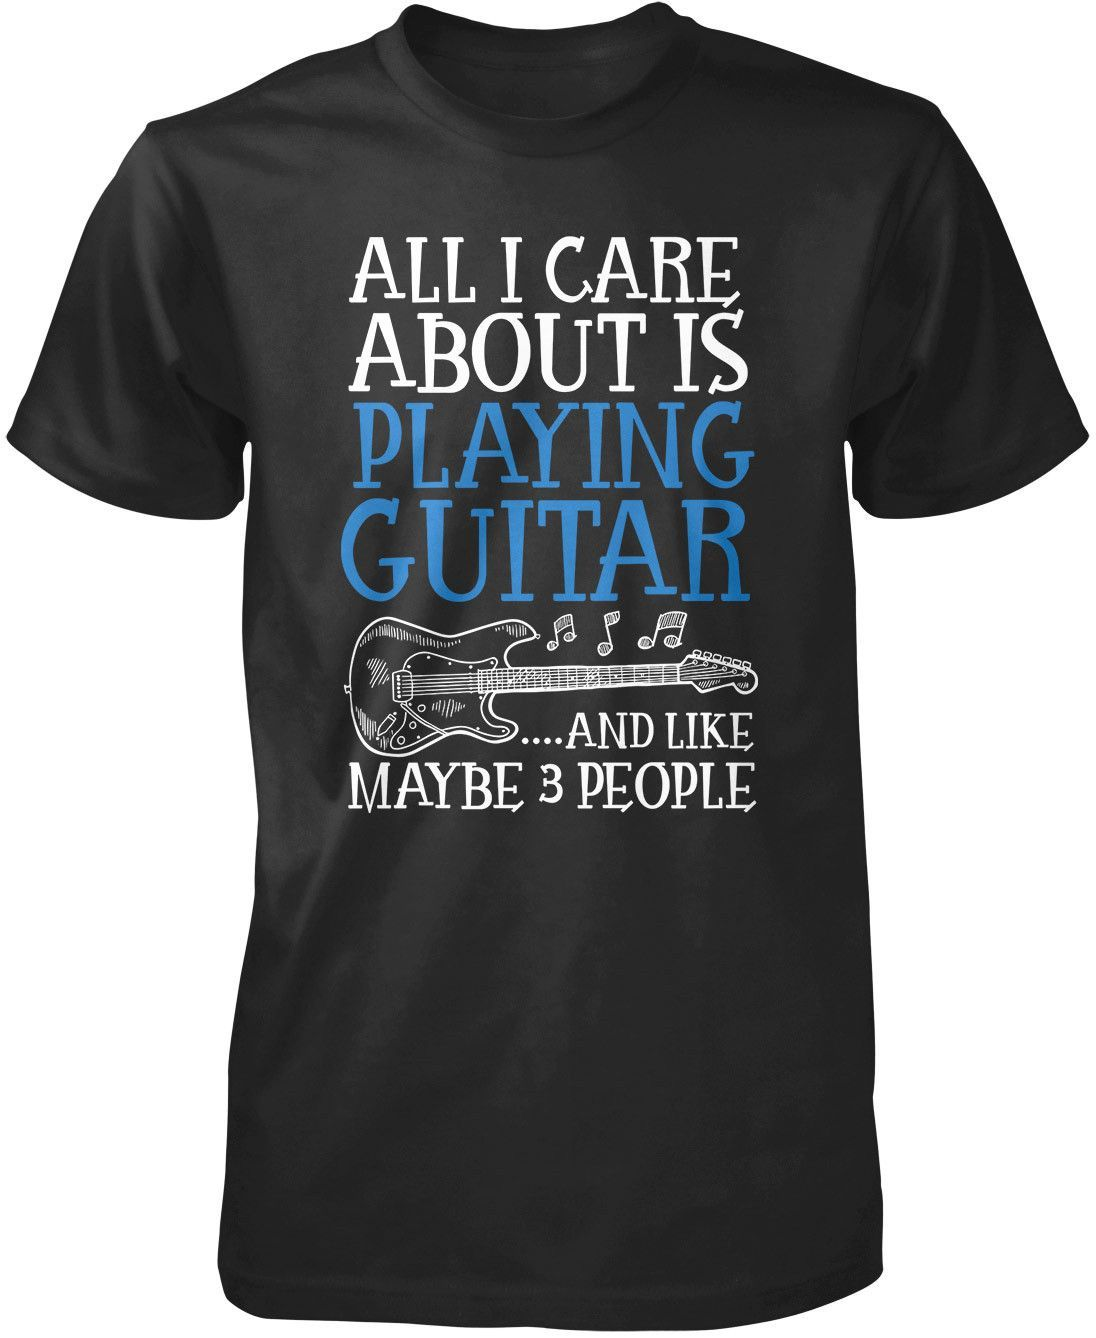 All I Care About is Playing Guitar